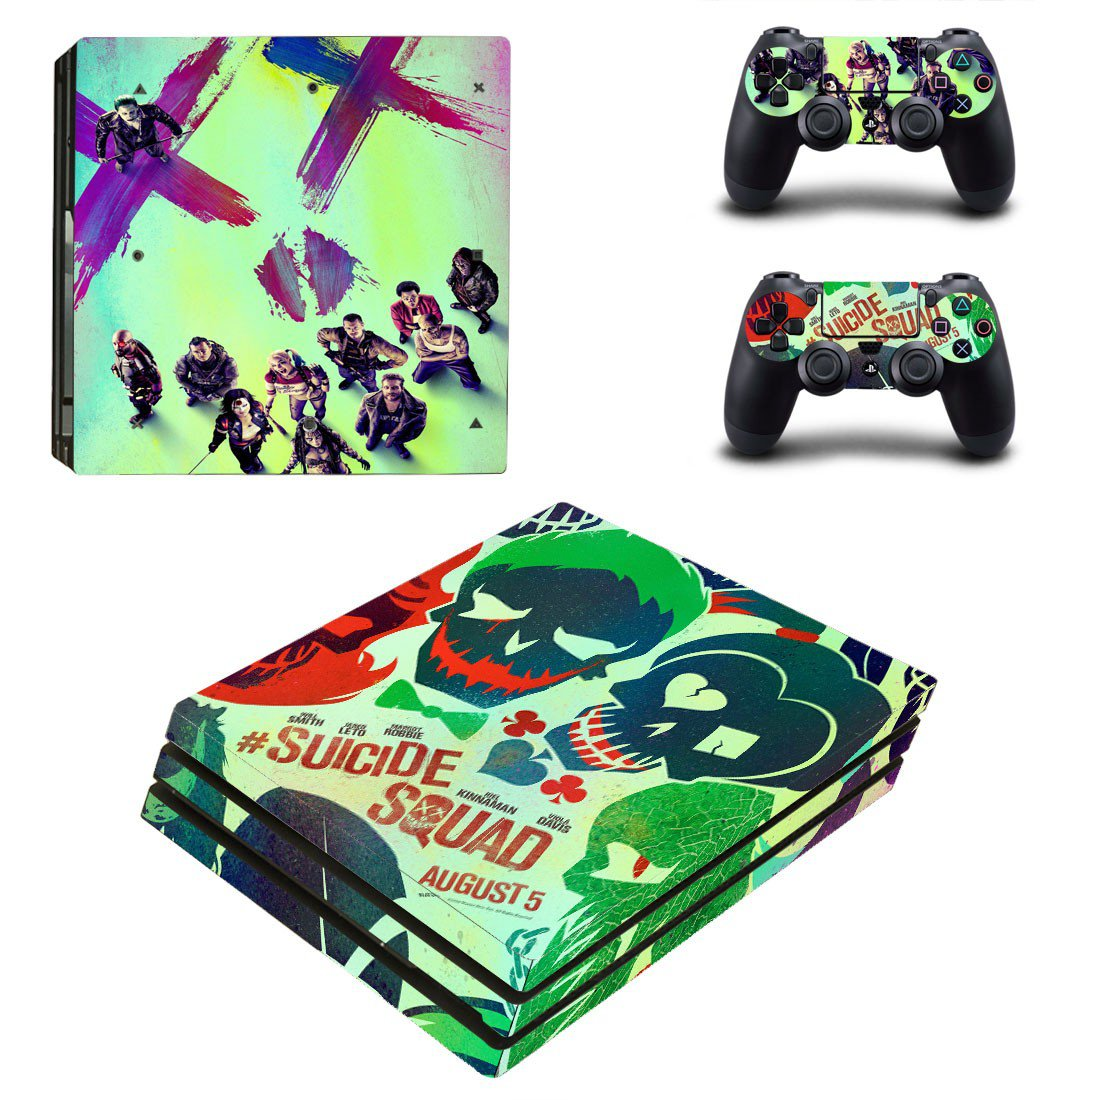 Suicide Squad ps4 pro skin decal for console and controllers